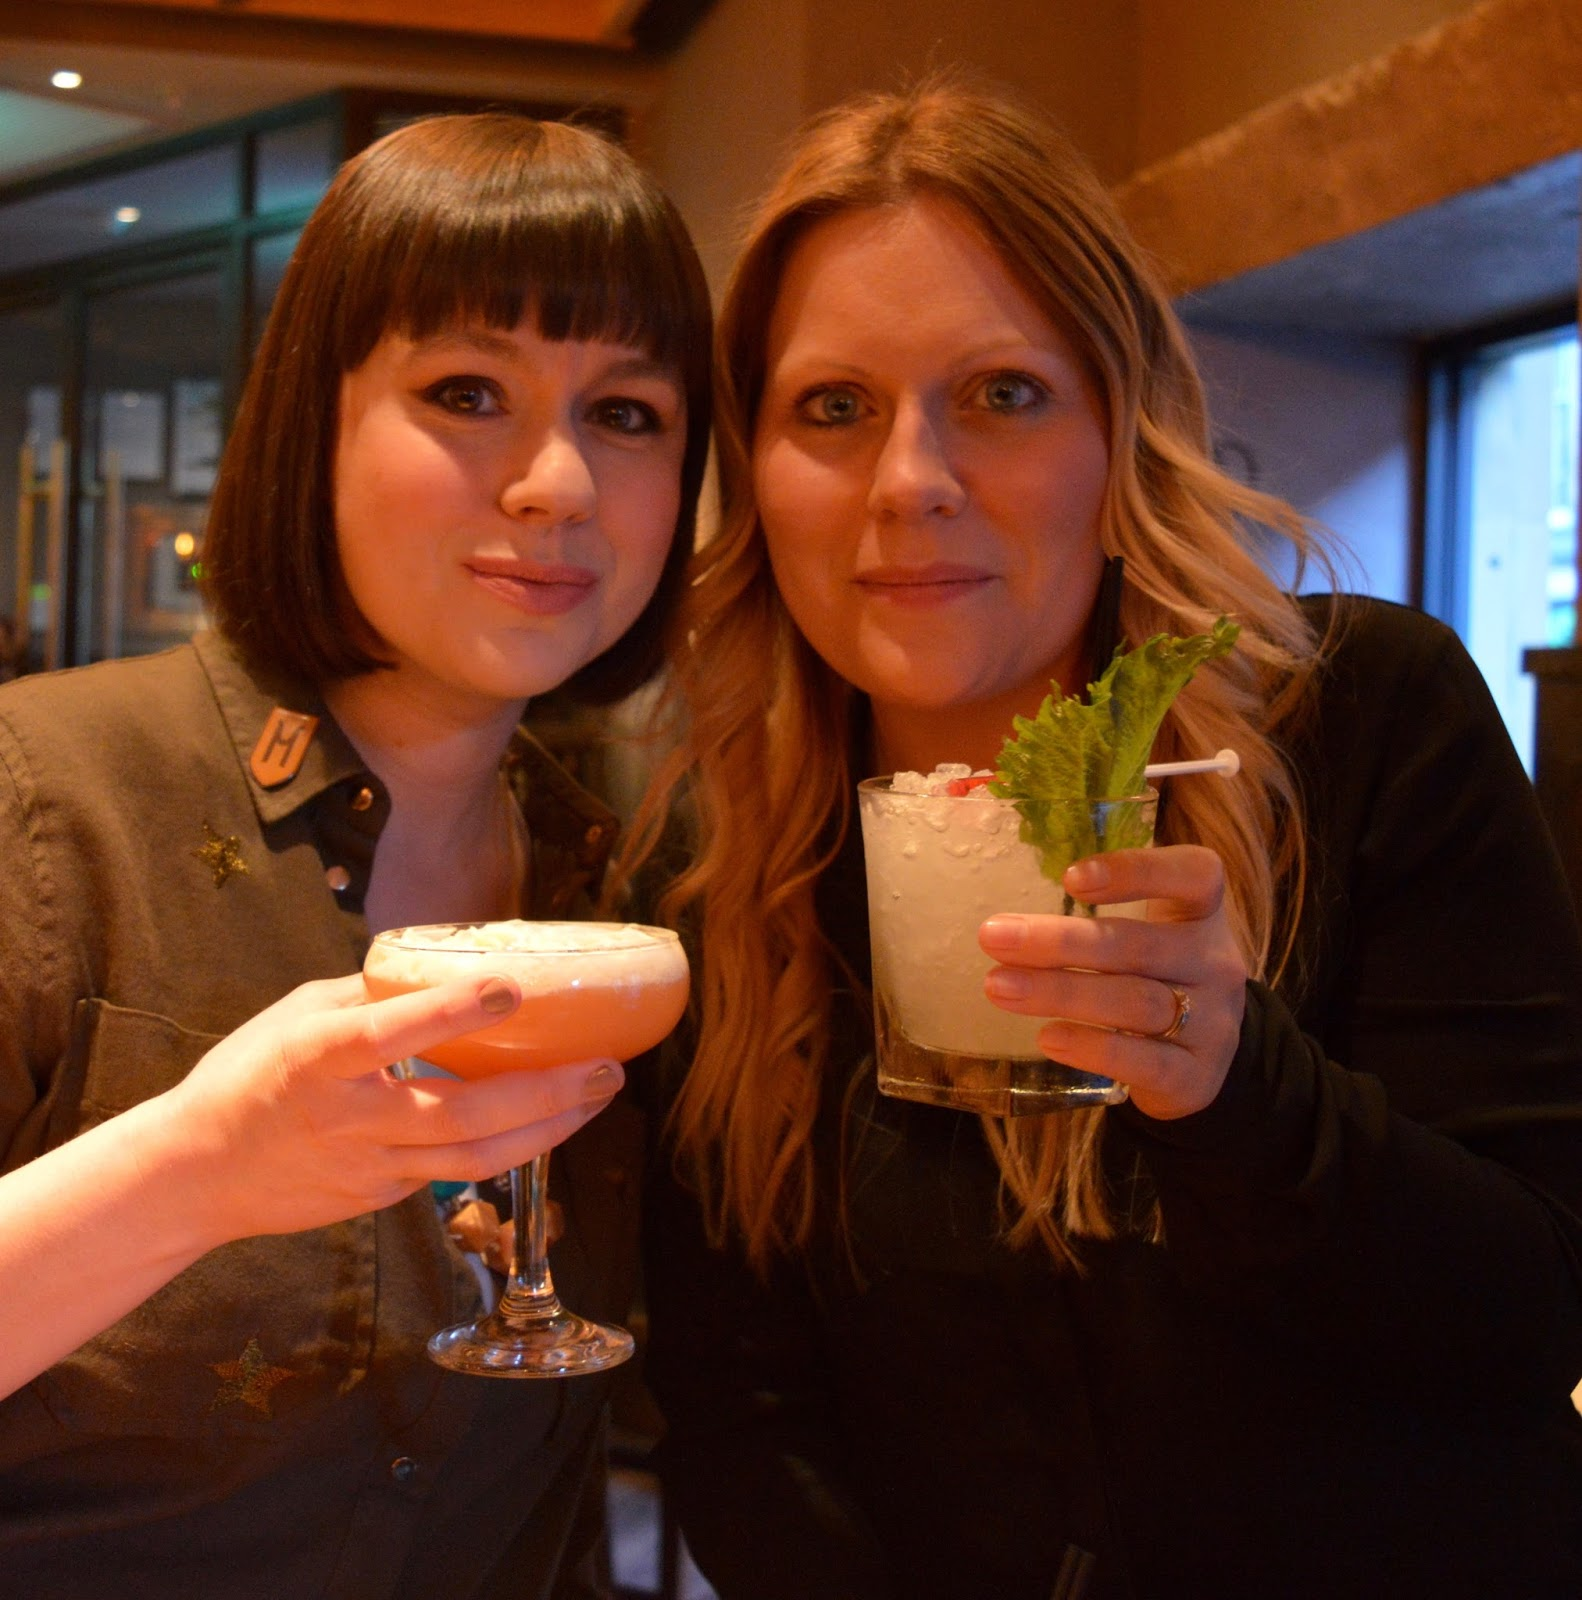 The Alchemist | Newcastle Upon Tyne - cocktails with the girls